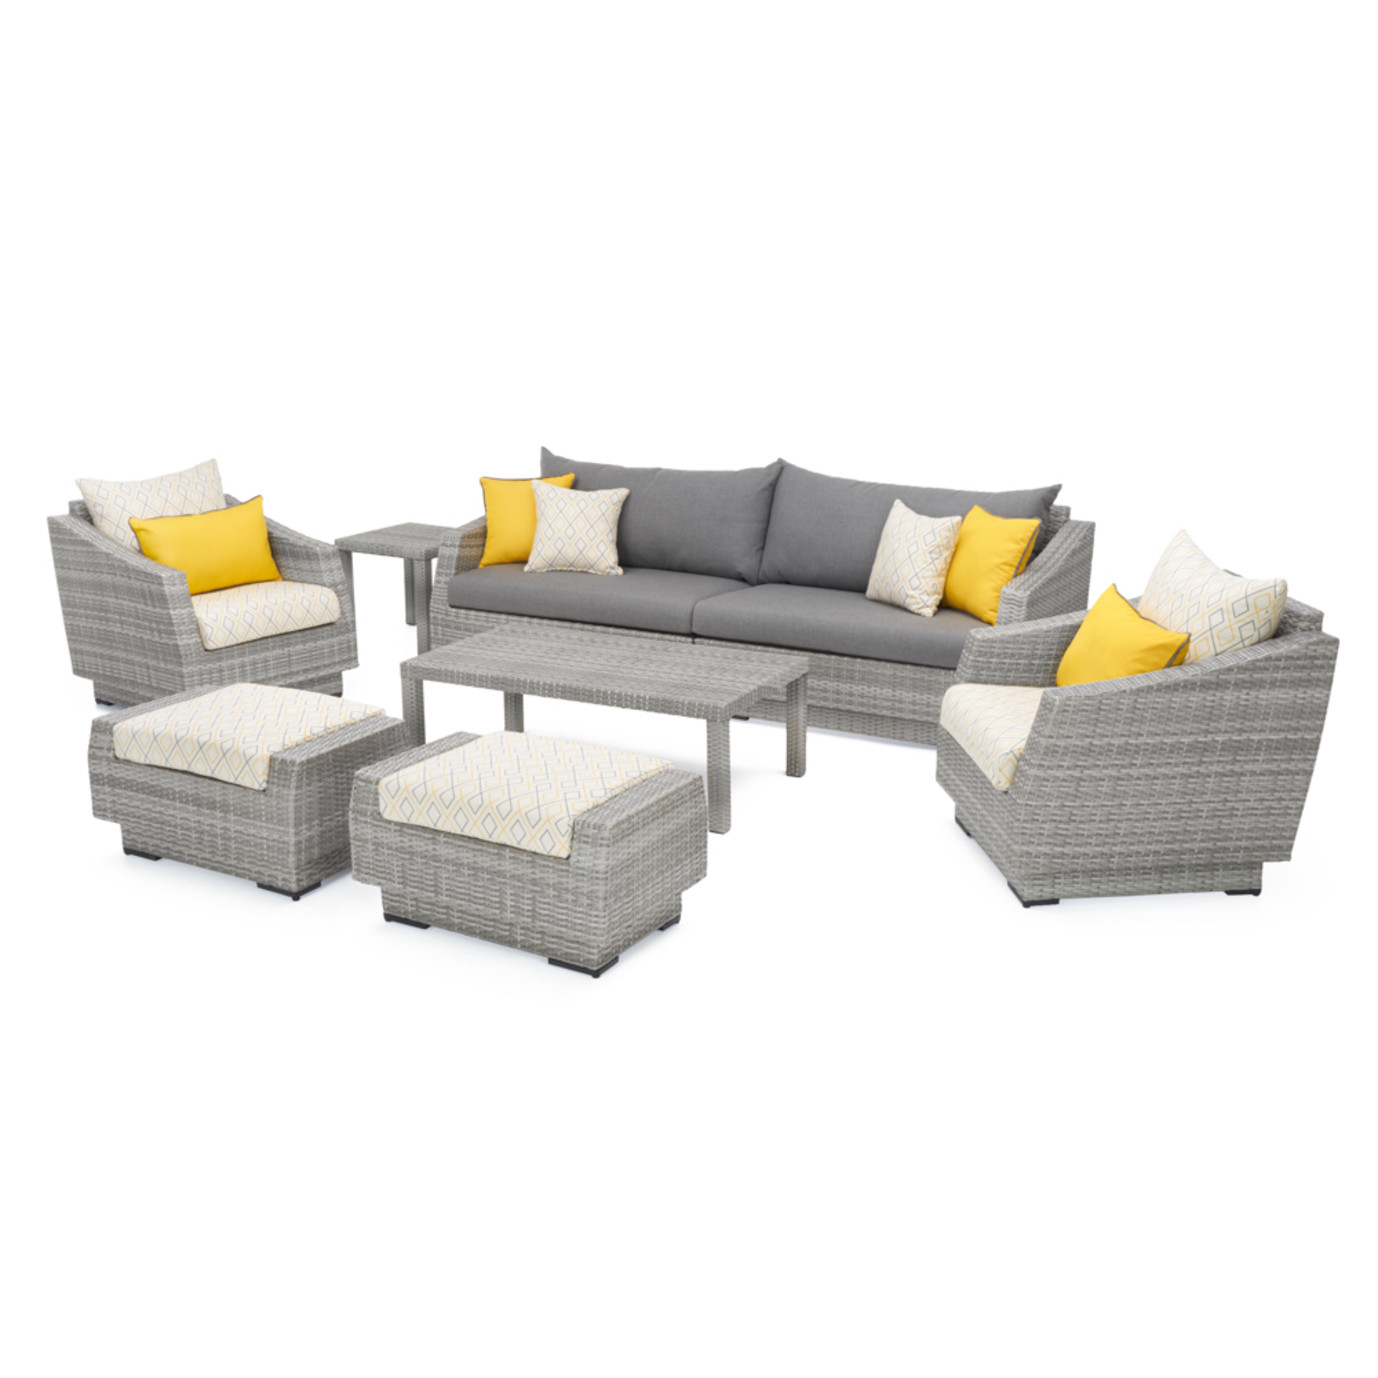 Cannes™ Design 8pc Sofa & Club Chair Set - Sunflower Yellow